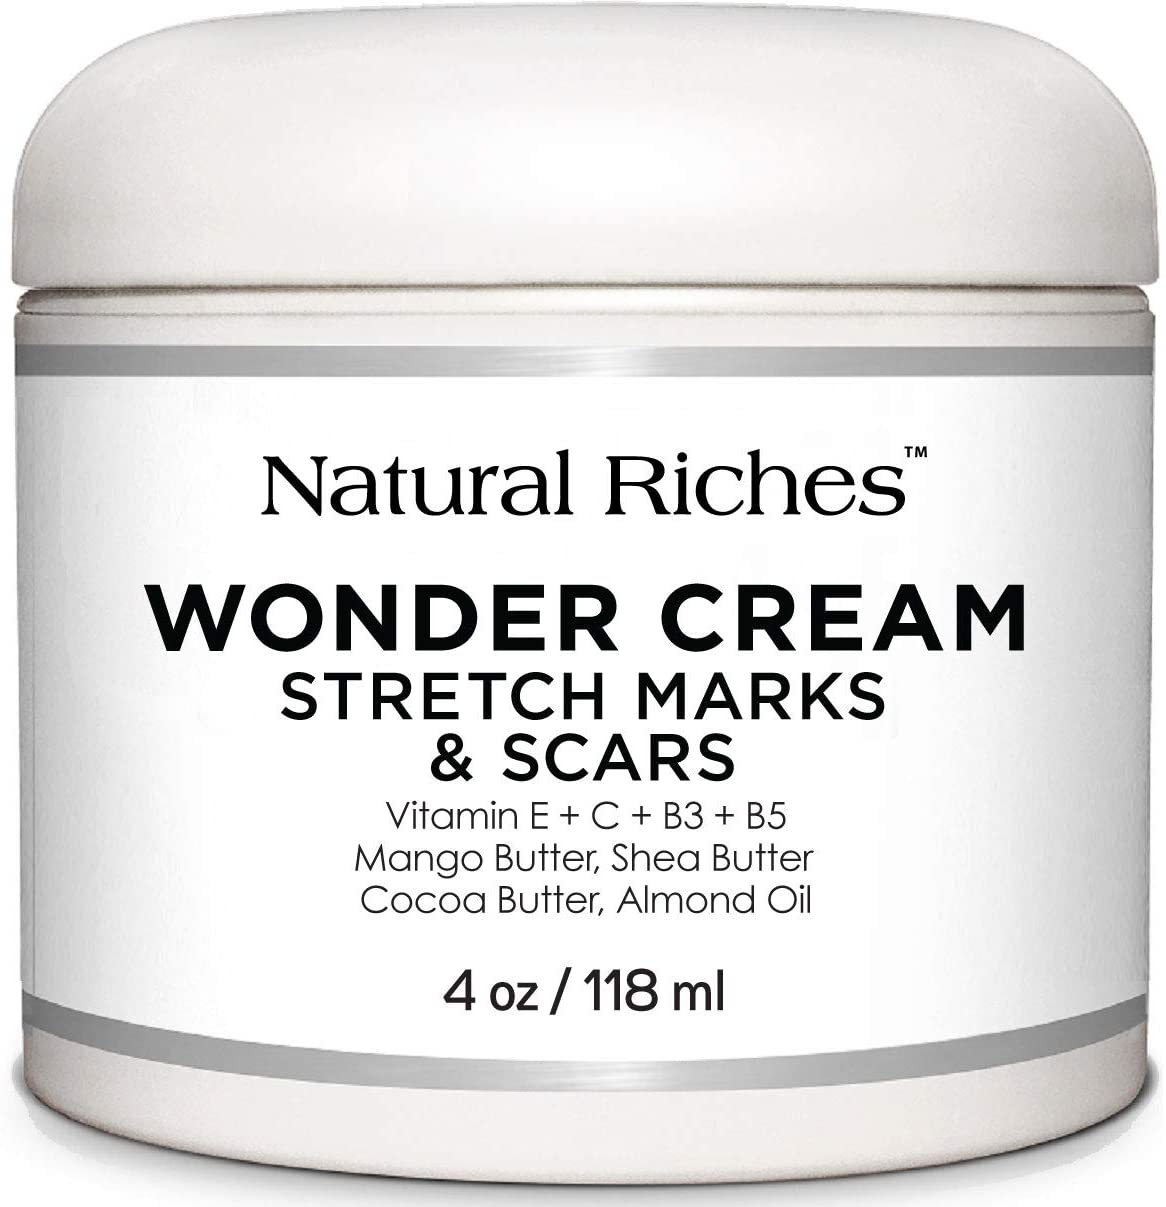 Natural Riches Stretch Marks & Scar Removal Cream, from Natural Riches - Natural, Reduces The Appearances of Keloids, Pregnancy Stretch Marks and Scars - 4 oz